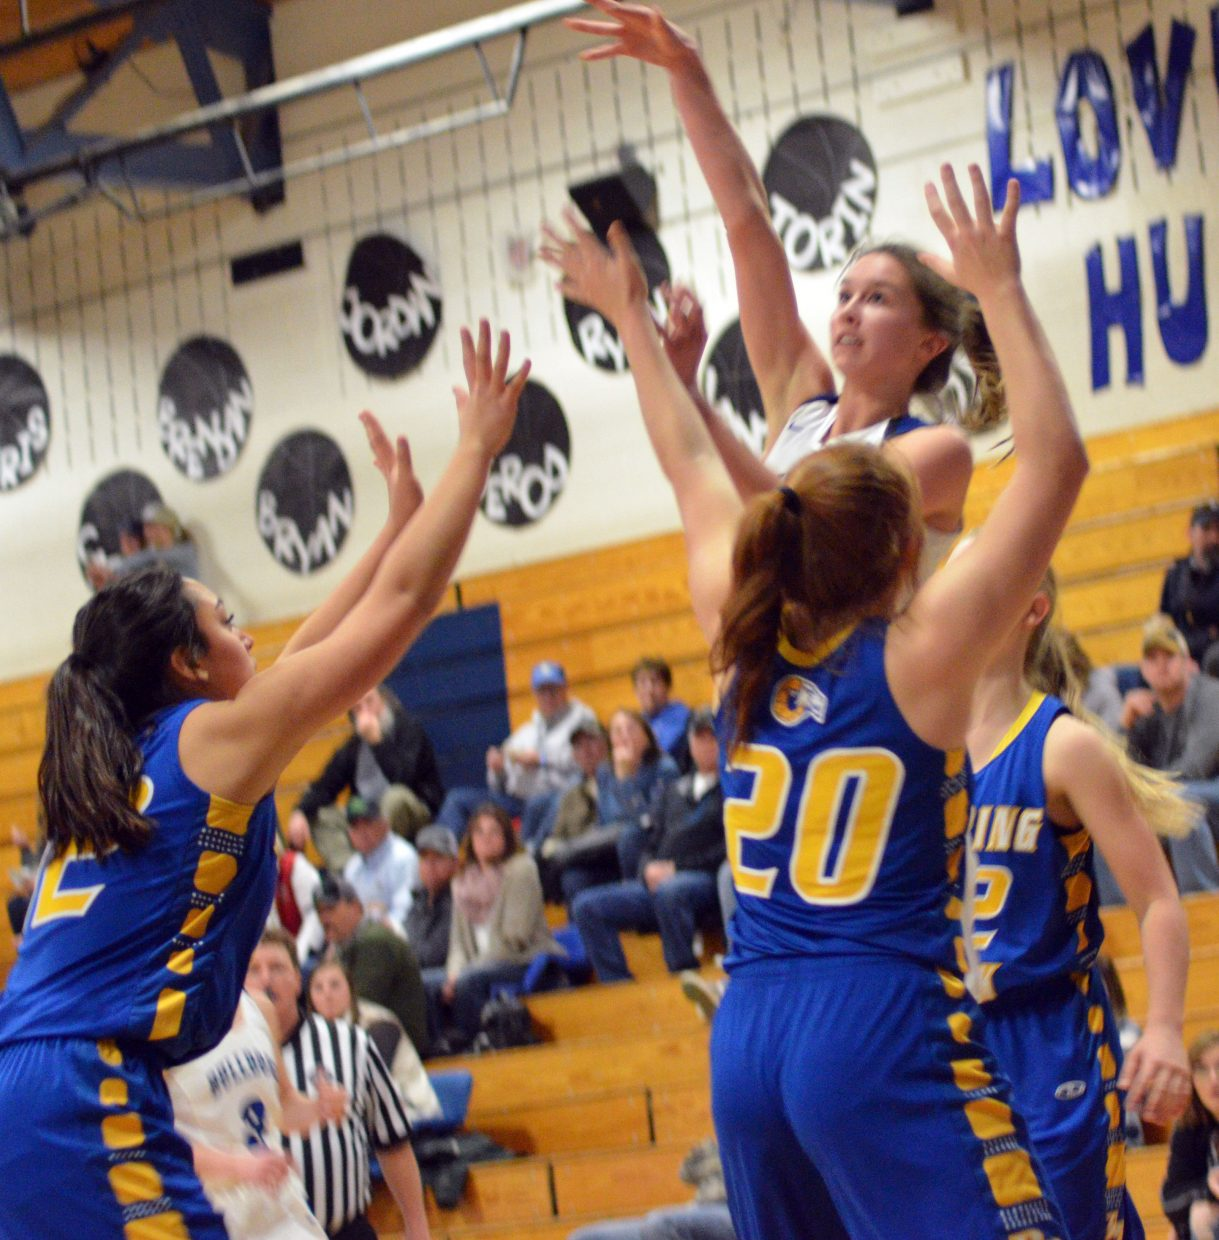 Moffat County High School's Emaleigh Papierski puts some extra arc on her jumper against Roaring Fork.